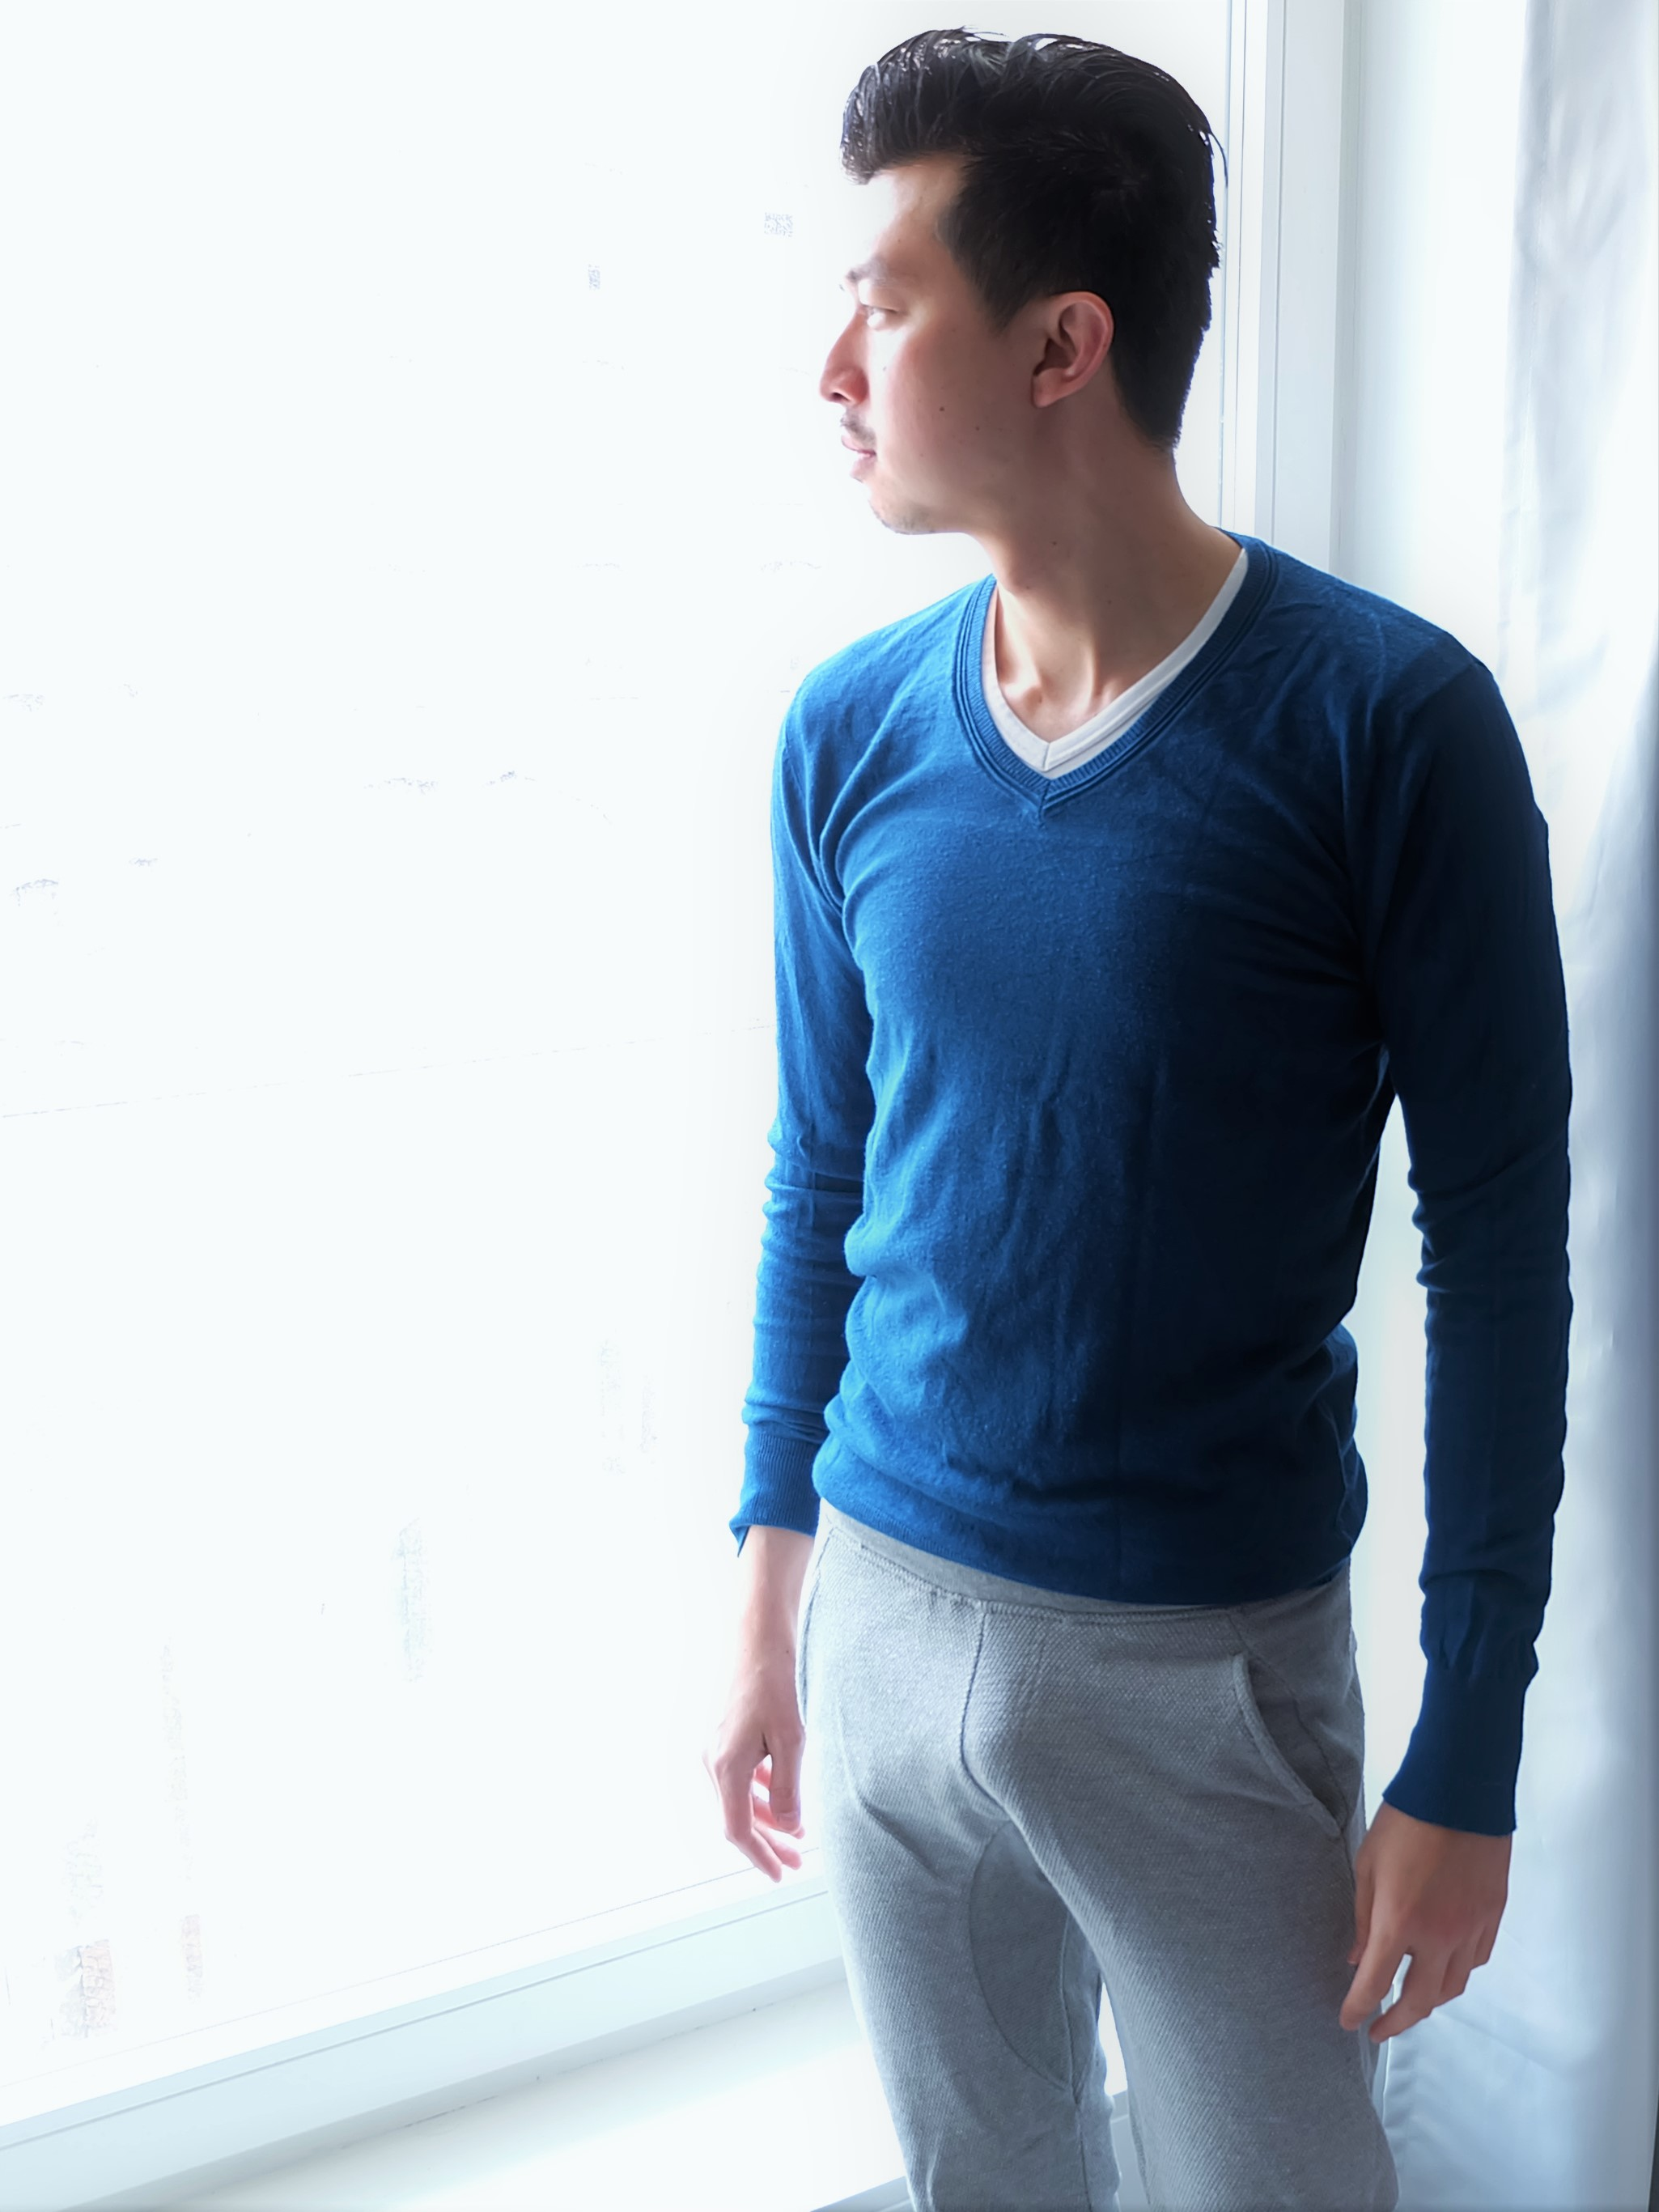 Carry It like Harry - Why a teal sweater is a must for a man's closet